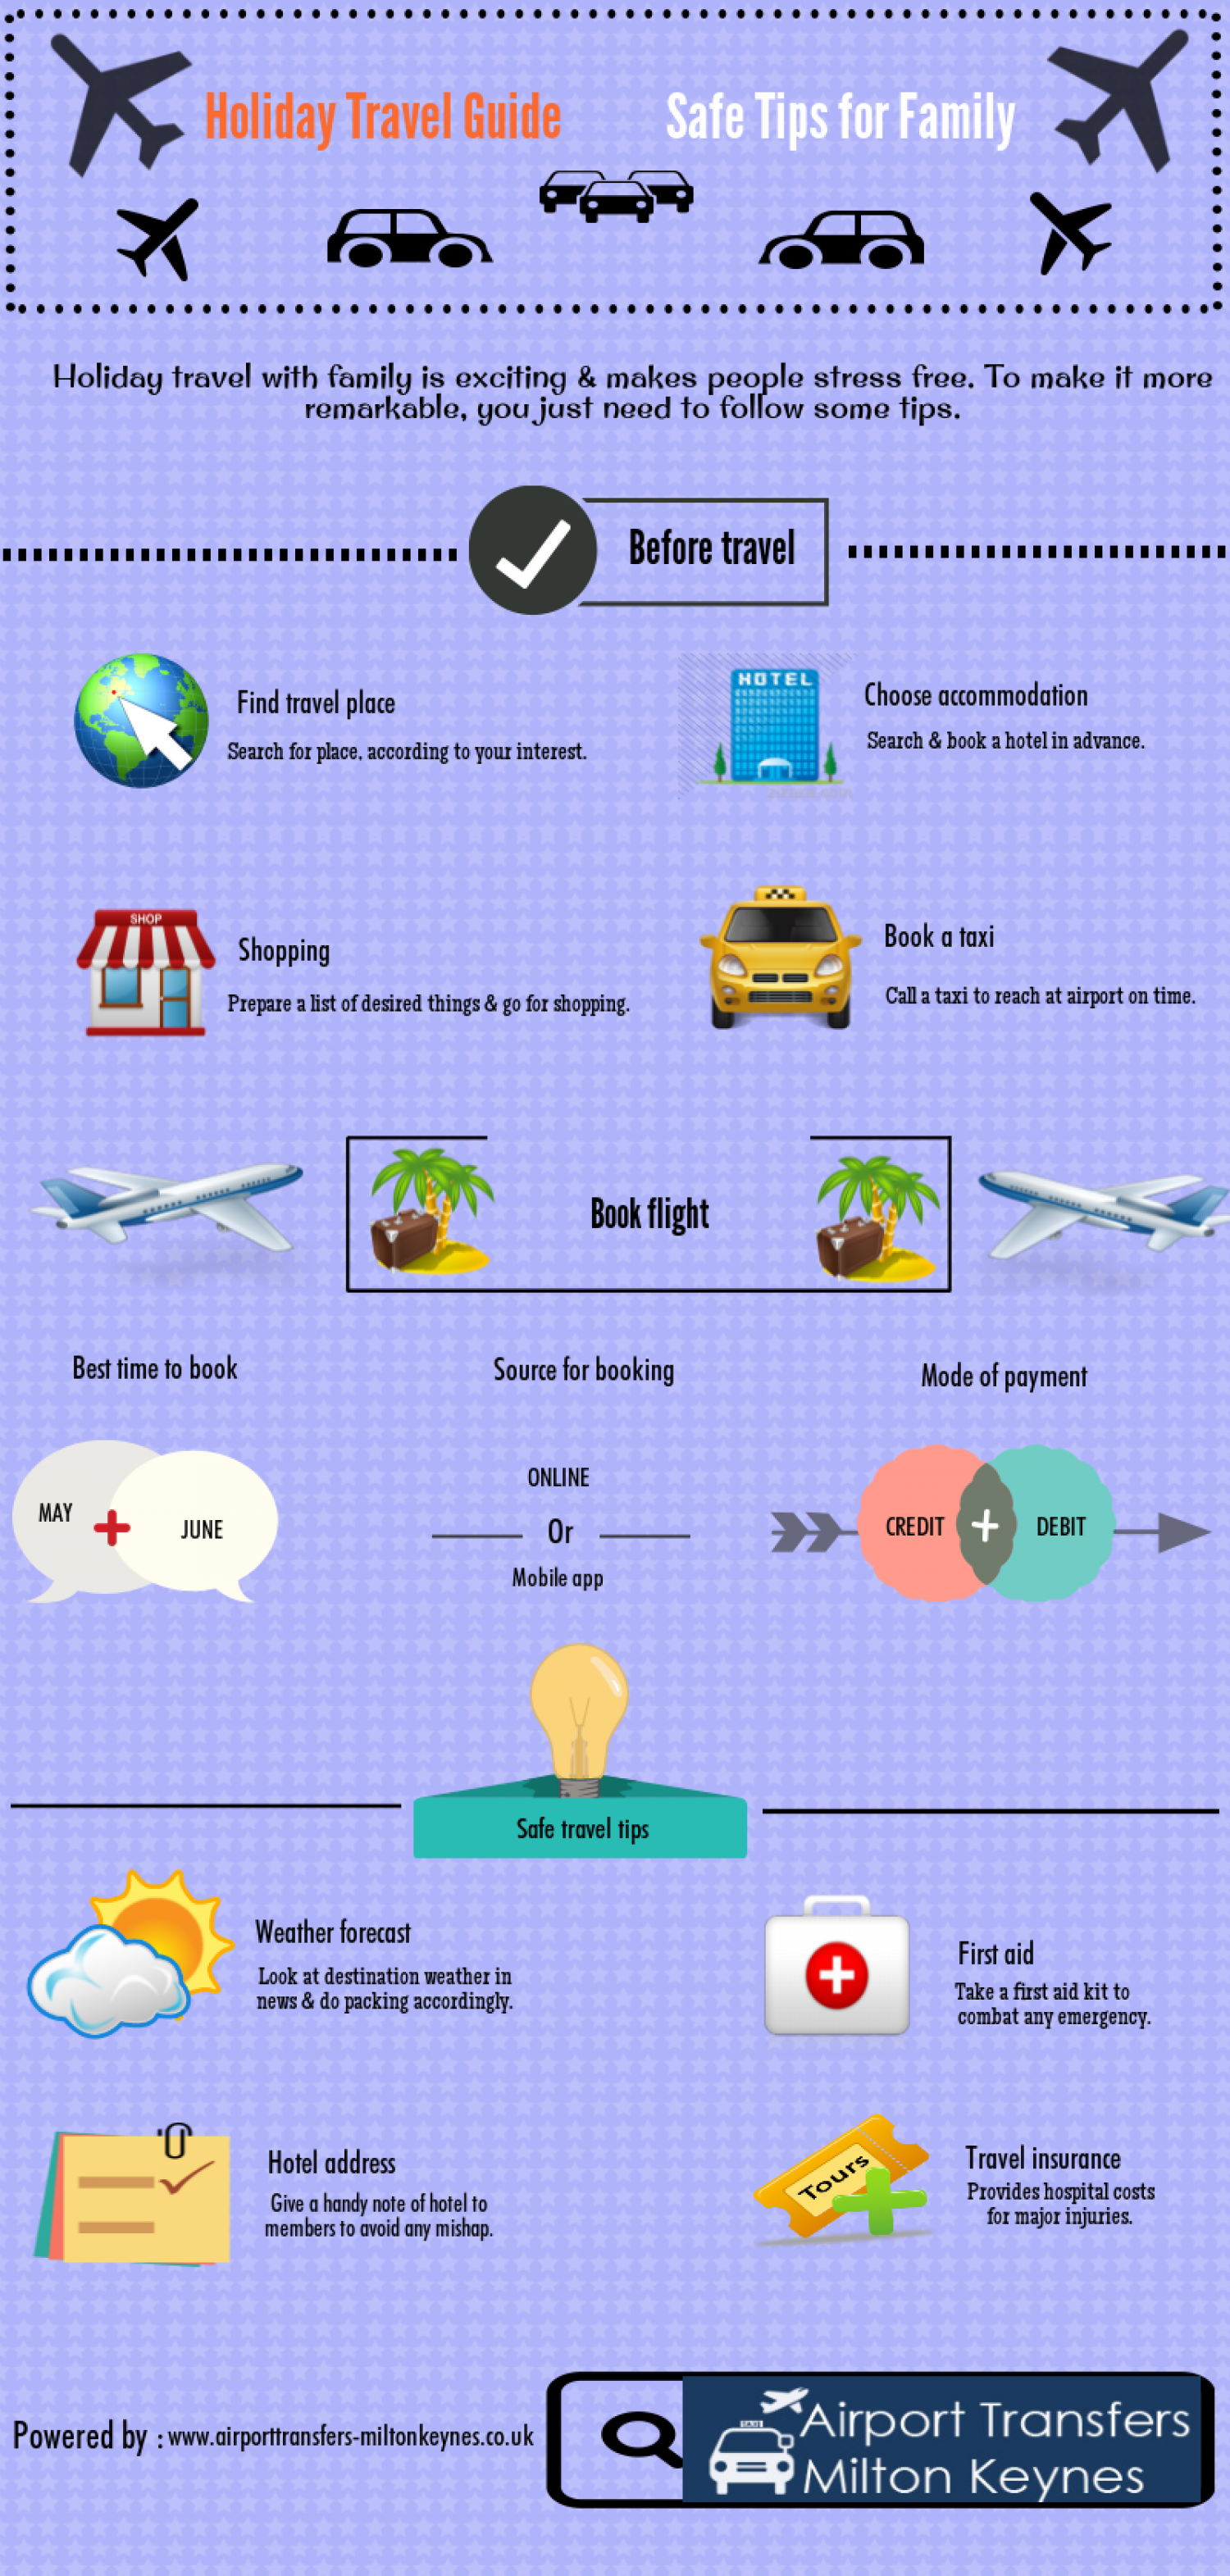 Holiday Travel Guide Safe Tips For Family Infographic